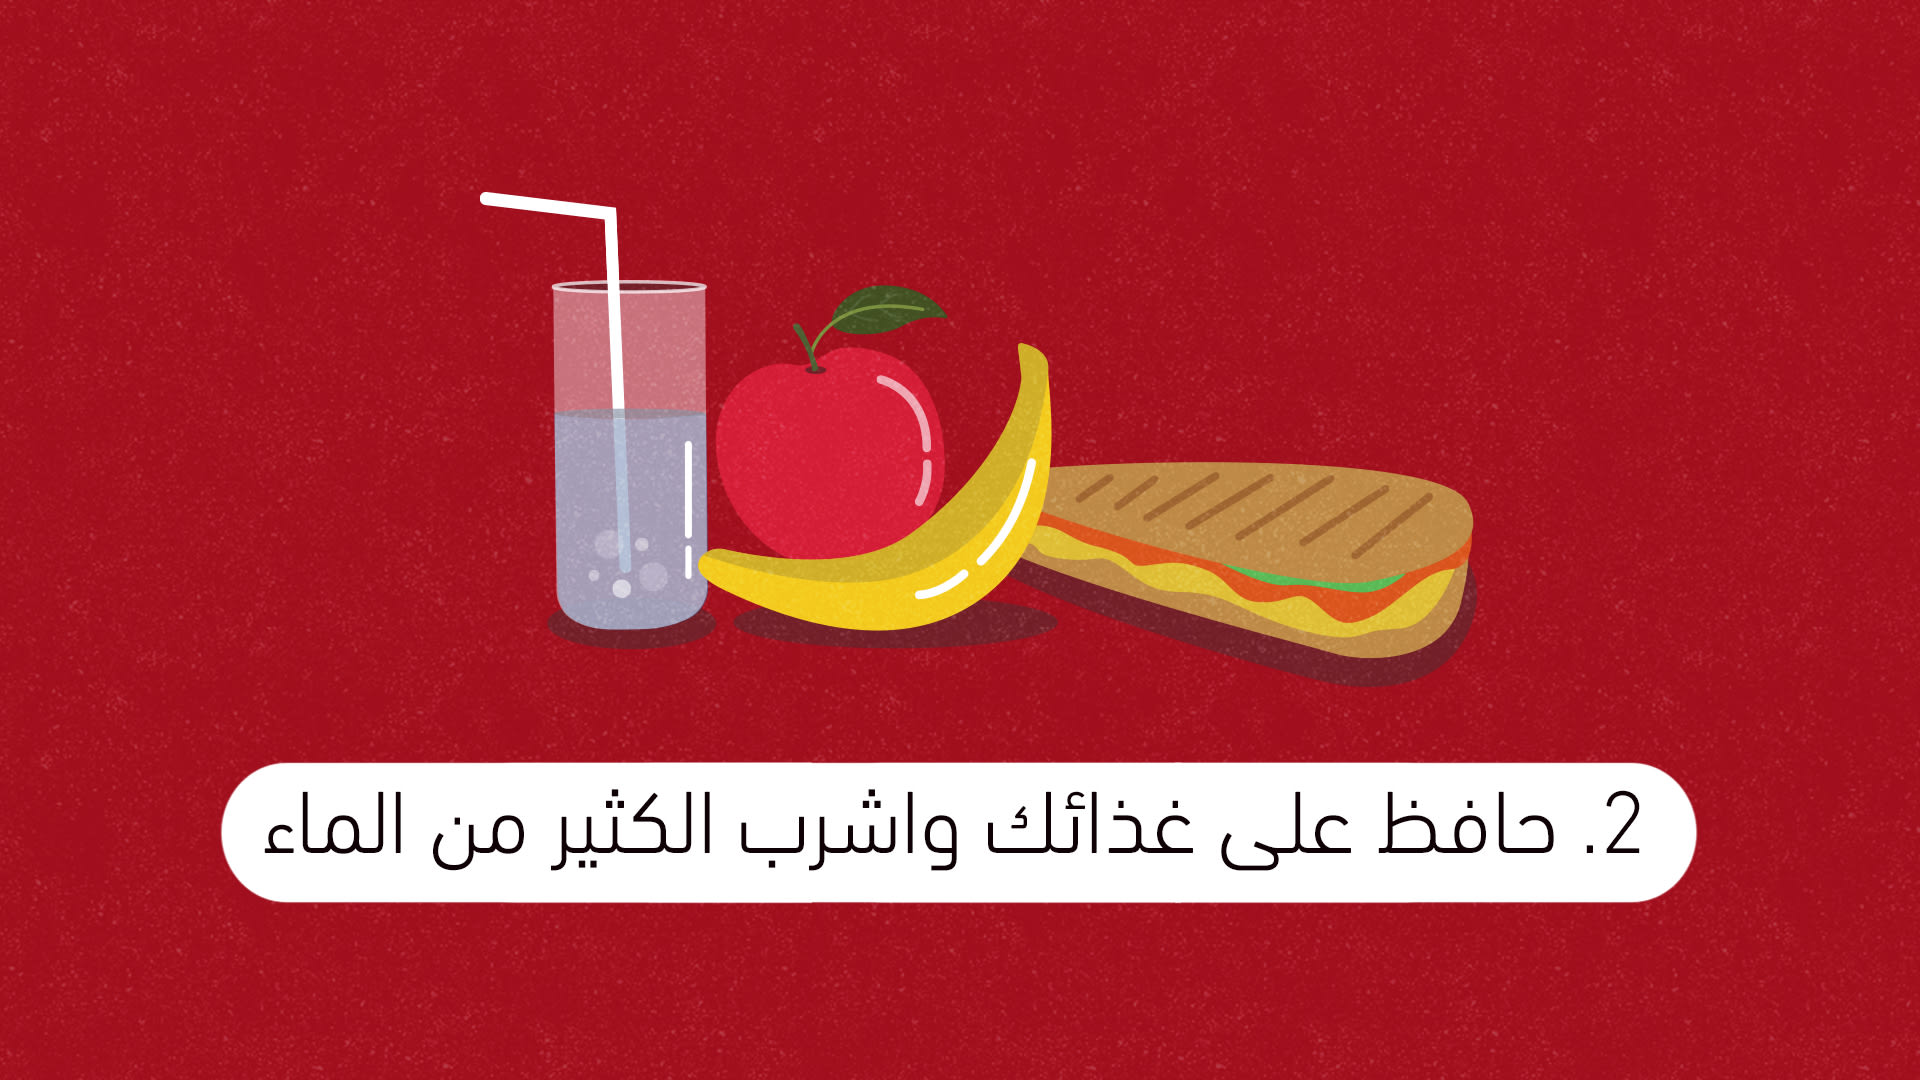 2. eat healthy and drink water